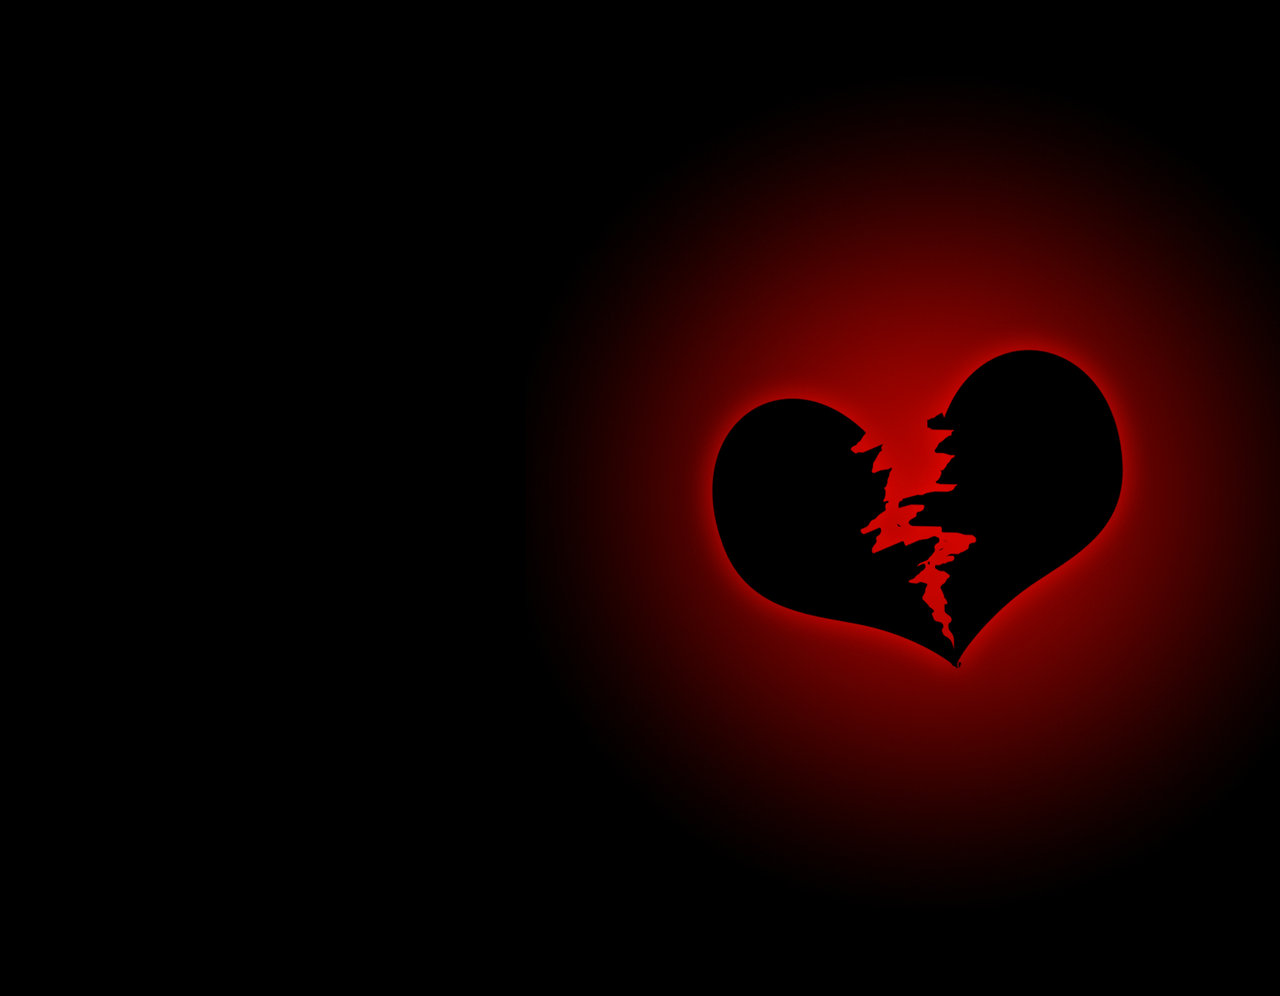 wallpaper broken heart - photo #13